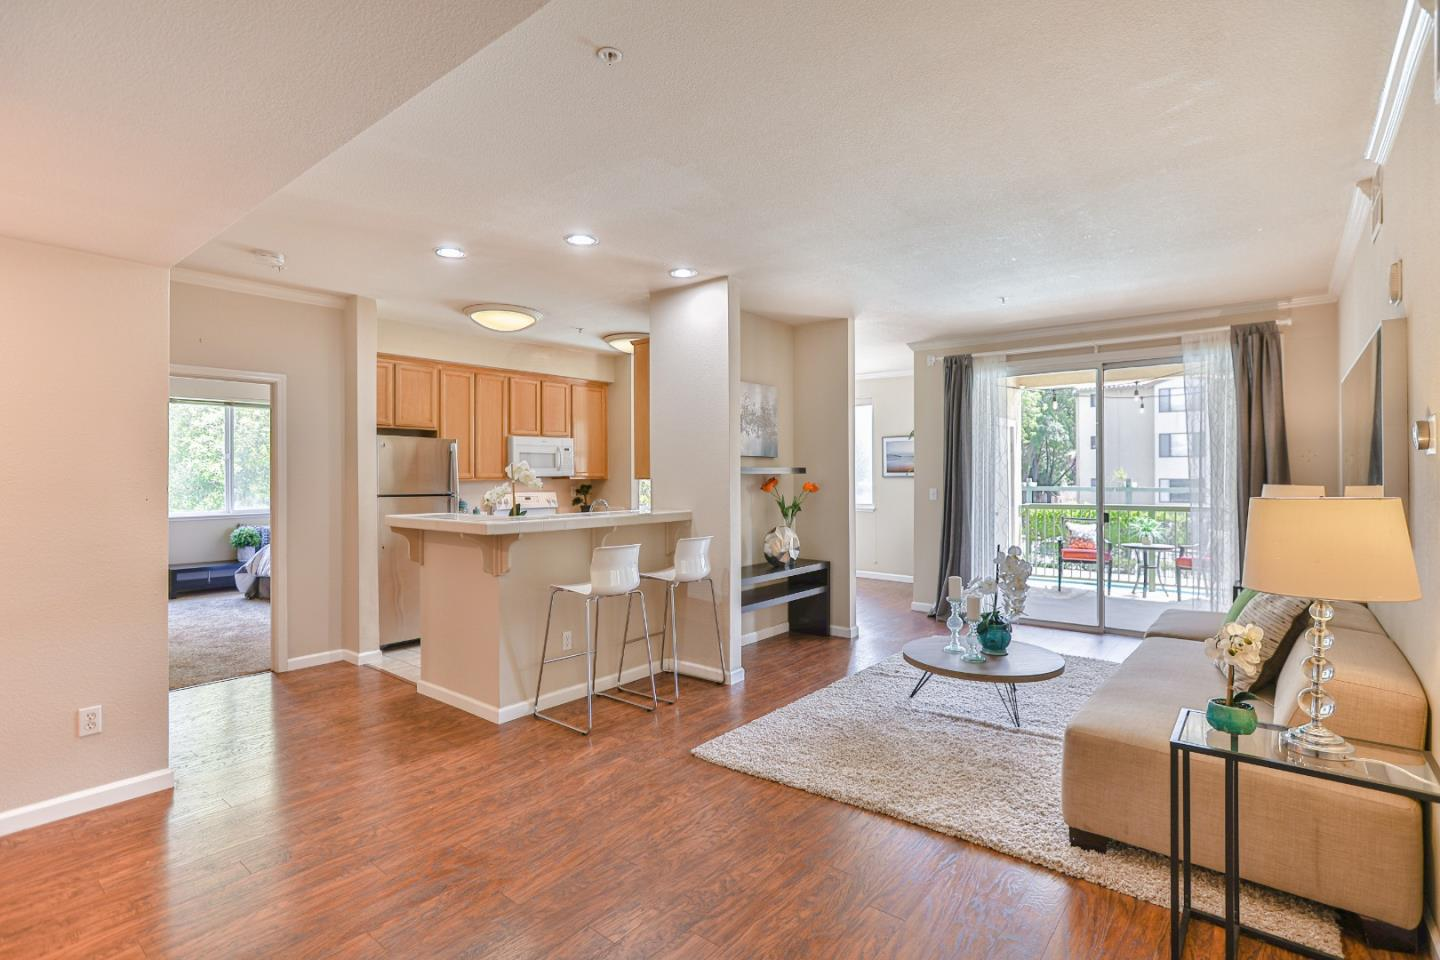 Convenient and sought-after ground floor, corner unit luxury condo situated in the highly-desired Parkmont area of Fremont. Wonderfully bright & airy floorplan with sizable private balcony overlooking the sunny & sparkling swimming pool  perfect for basking in the sun. Roomy dining room with addl eating area at countertop breakfast bar. Spacious master bedroom with en-suite bath. Both bedrooms have generous-sized walk-in closets. In-unit laundry room has full sized washer/dryer. Complex secured via common entrance with elevator access & reserved, covered parking with plenty of street parking for your guests. Easy commute location! Only a 10 min walk to BART and minutes to all major Silicon Valley tech companies, main thoroughfares and public transportation. In close proximity to highly-rated schools, Whole Foods, Trader Joe's, Lake Elizabeth, Fremont Hub, Public Library, Philz/Peets/Starbucks Coffee. Enjoy a relaxed suburban atmosphere with the convenience of city living!